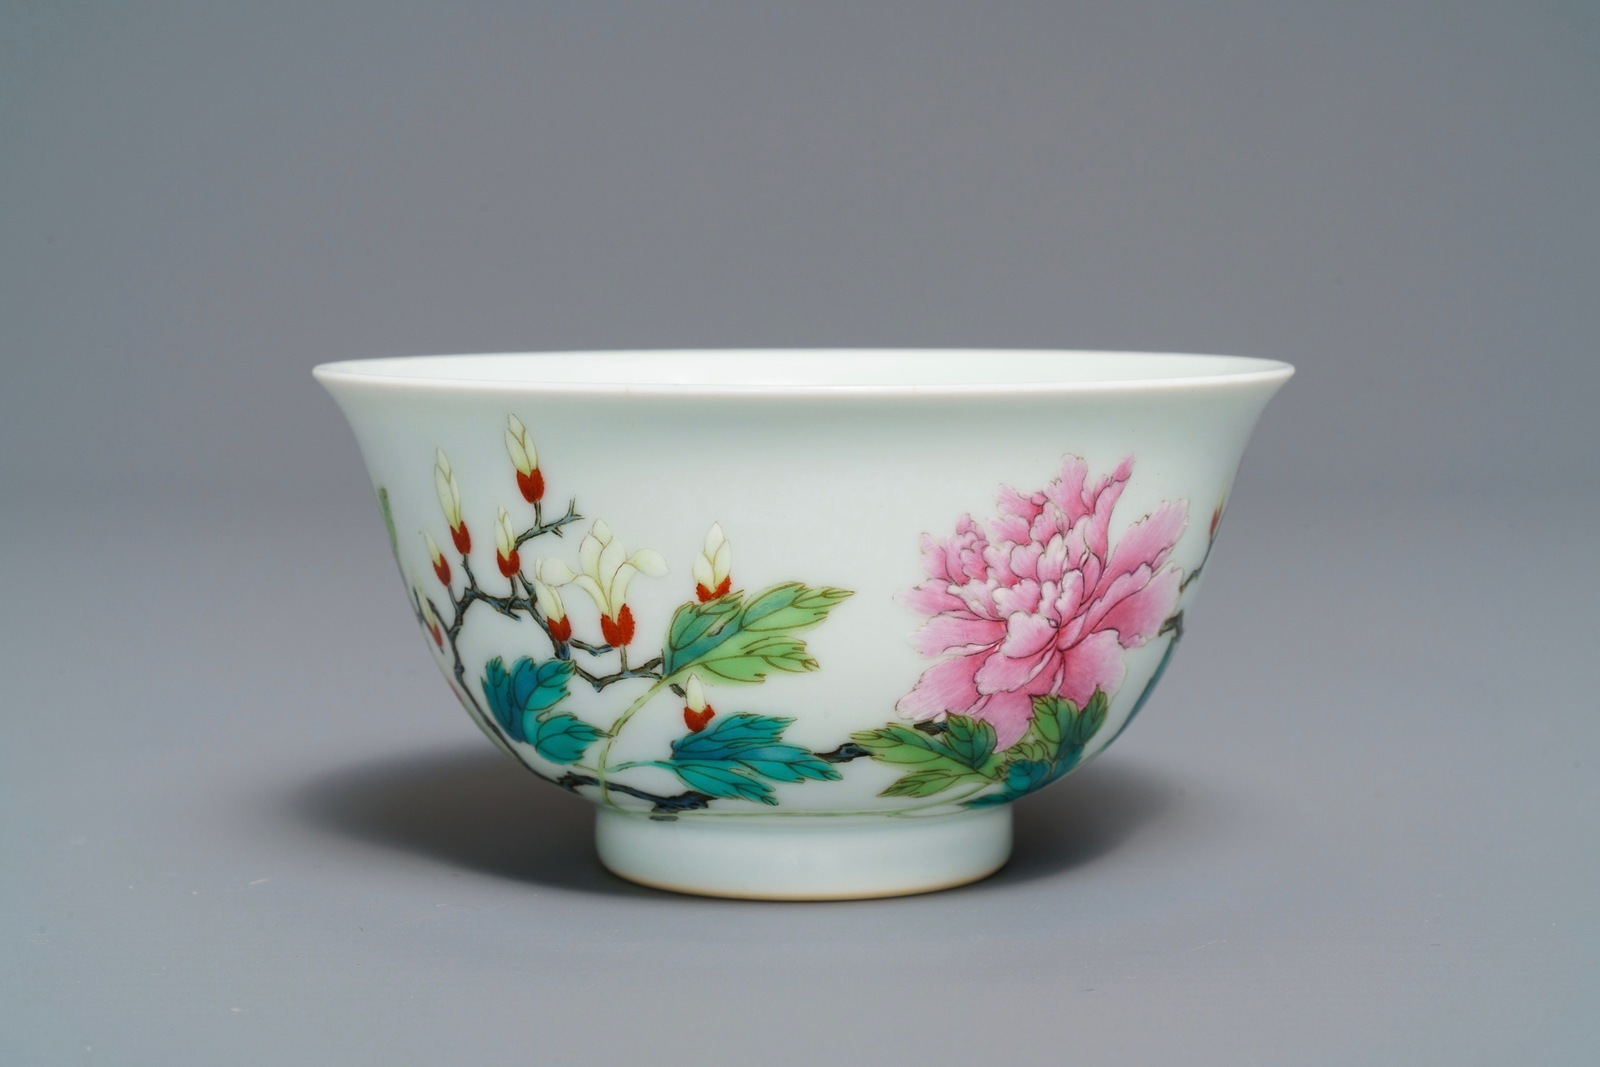 Lot 39 - A Chinese famille rose bowl with floral design, Yongzheng mark, 19/20th C.